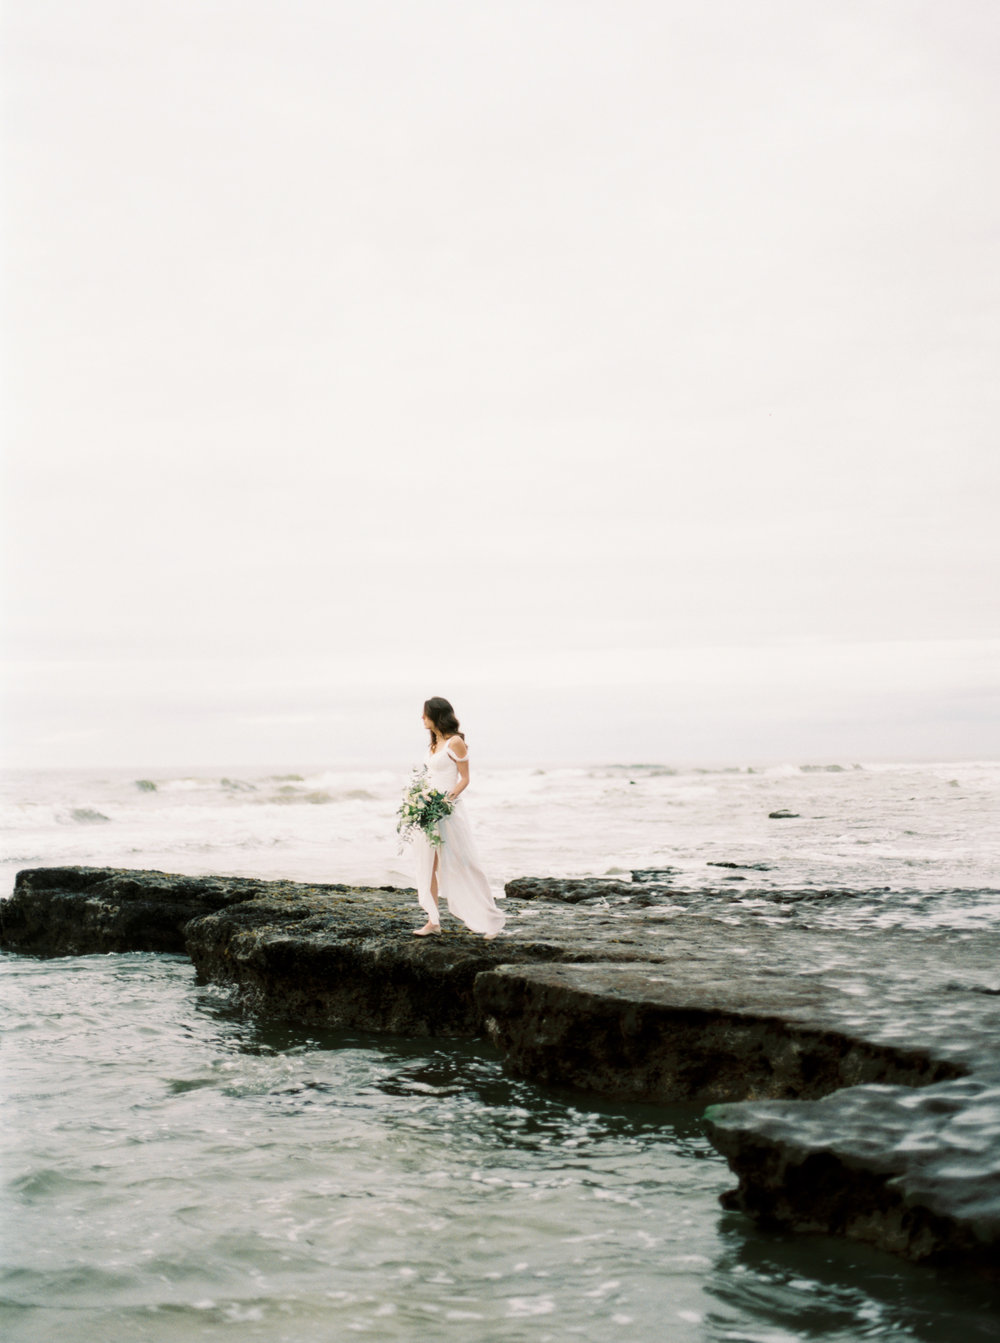 California_Wedding_Photography_Film_FallenPhotograhpy-48.jpg